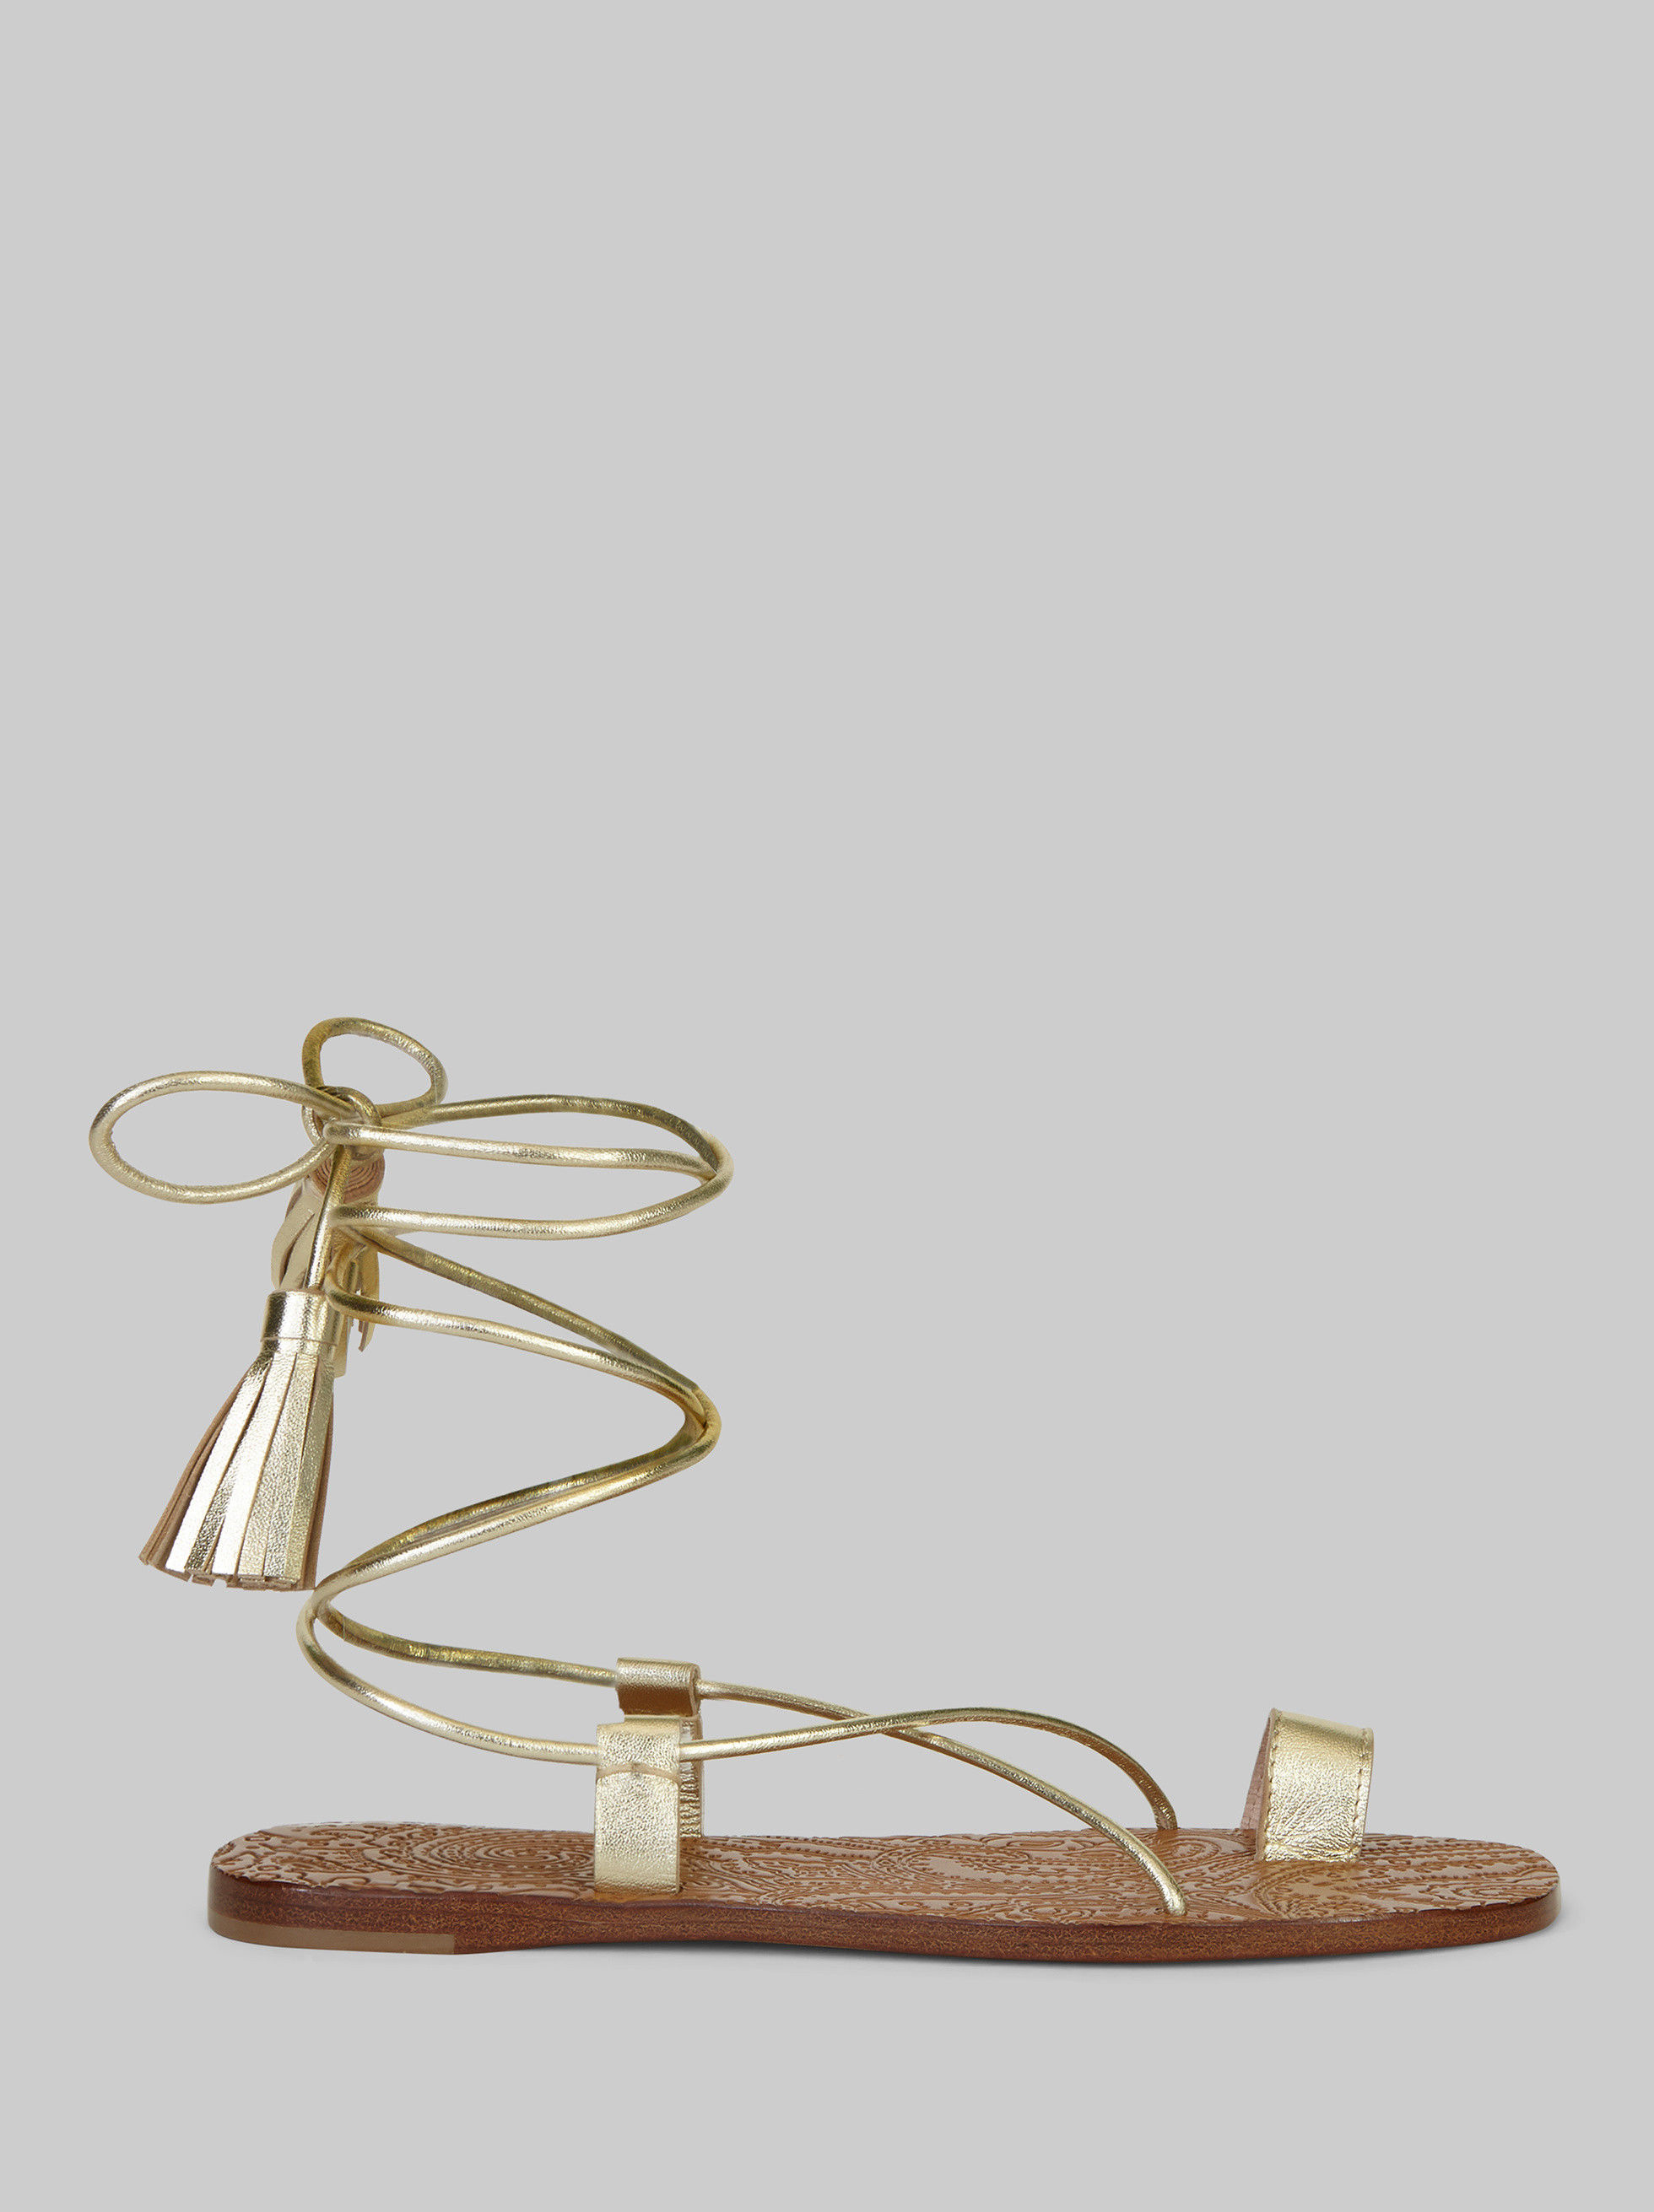 LEATHER SANDALS WITH TASSELS